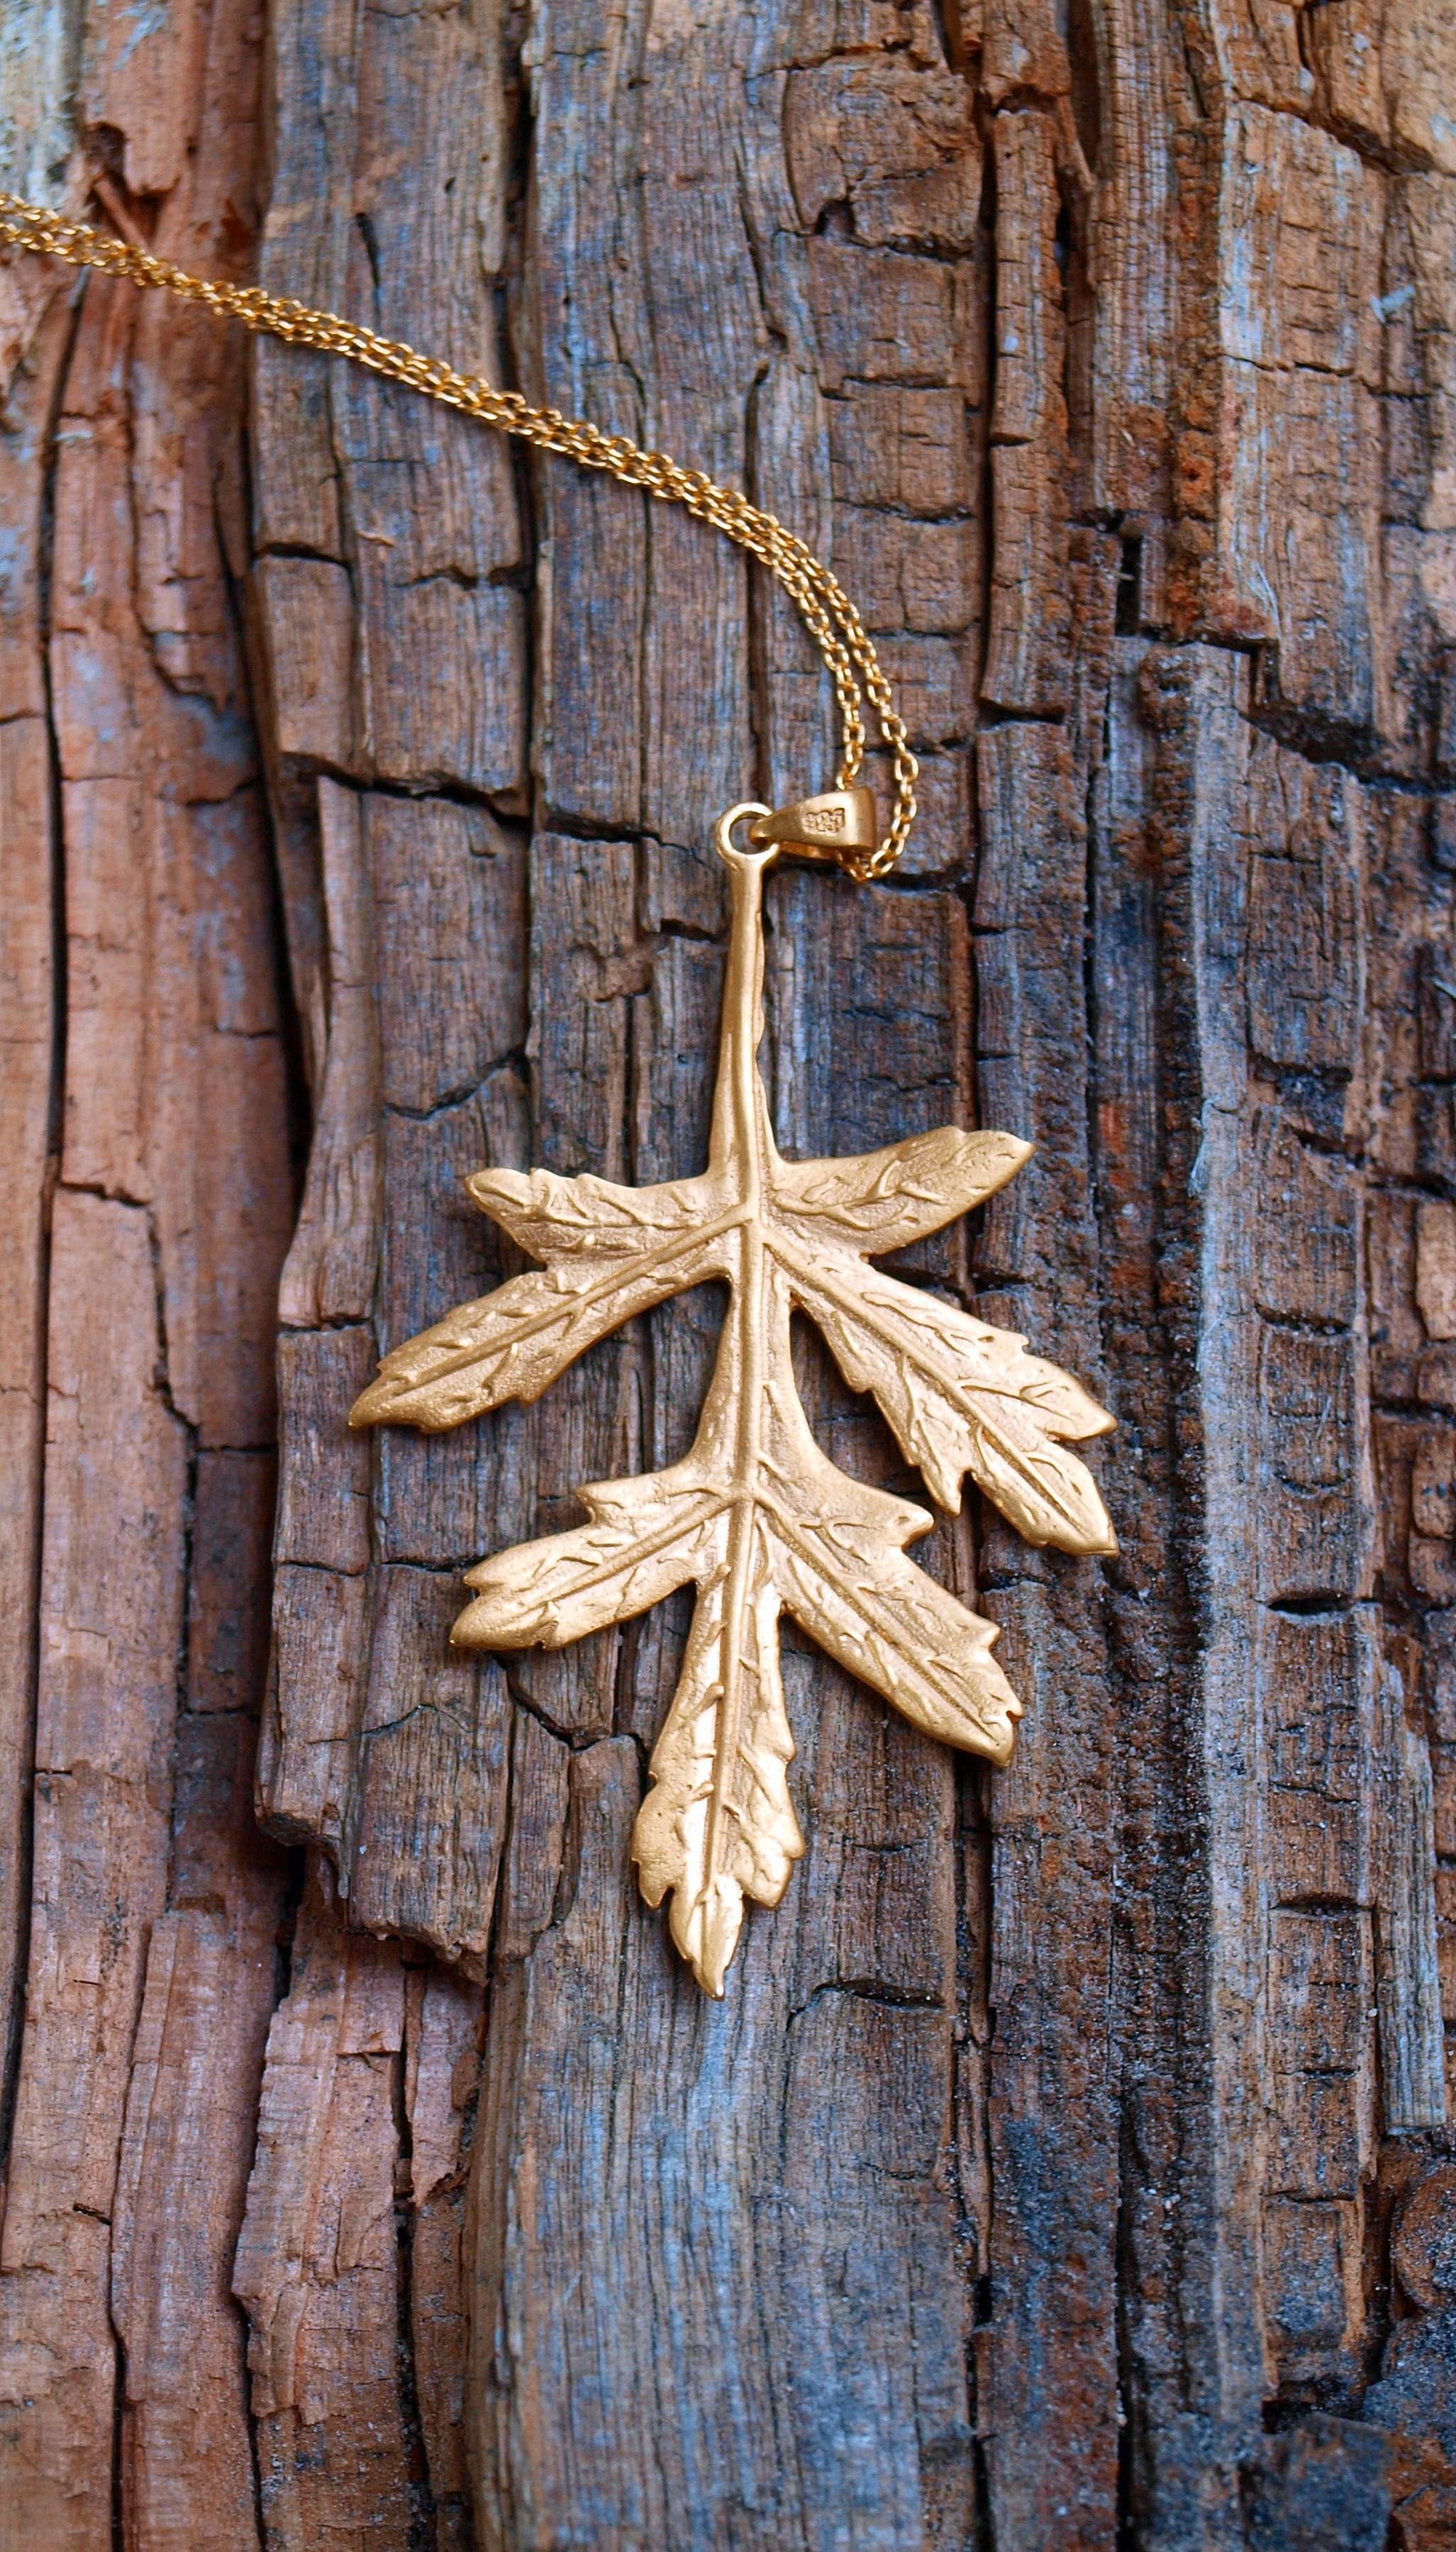 Pin oak leaf pendant - gold-plated sterling silver  The pin oak tree (Quercus palustris) isn't as well known as its English oak cousin but its feathery leaves make a stunning pendant